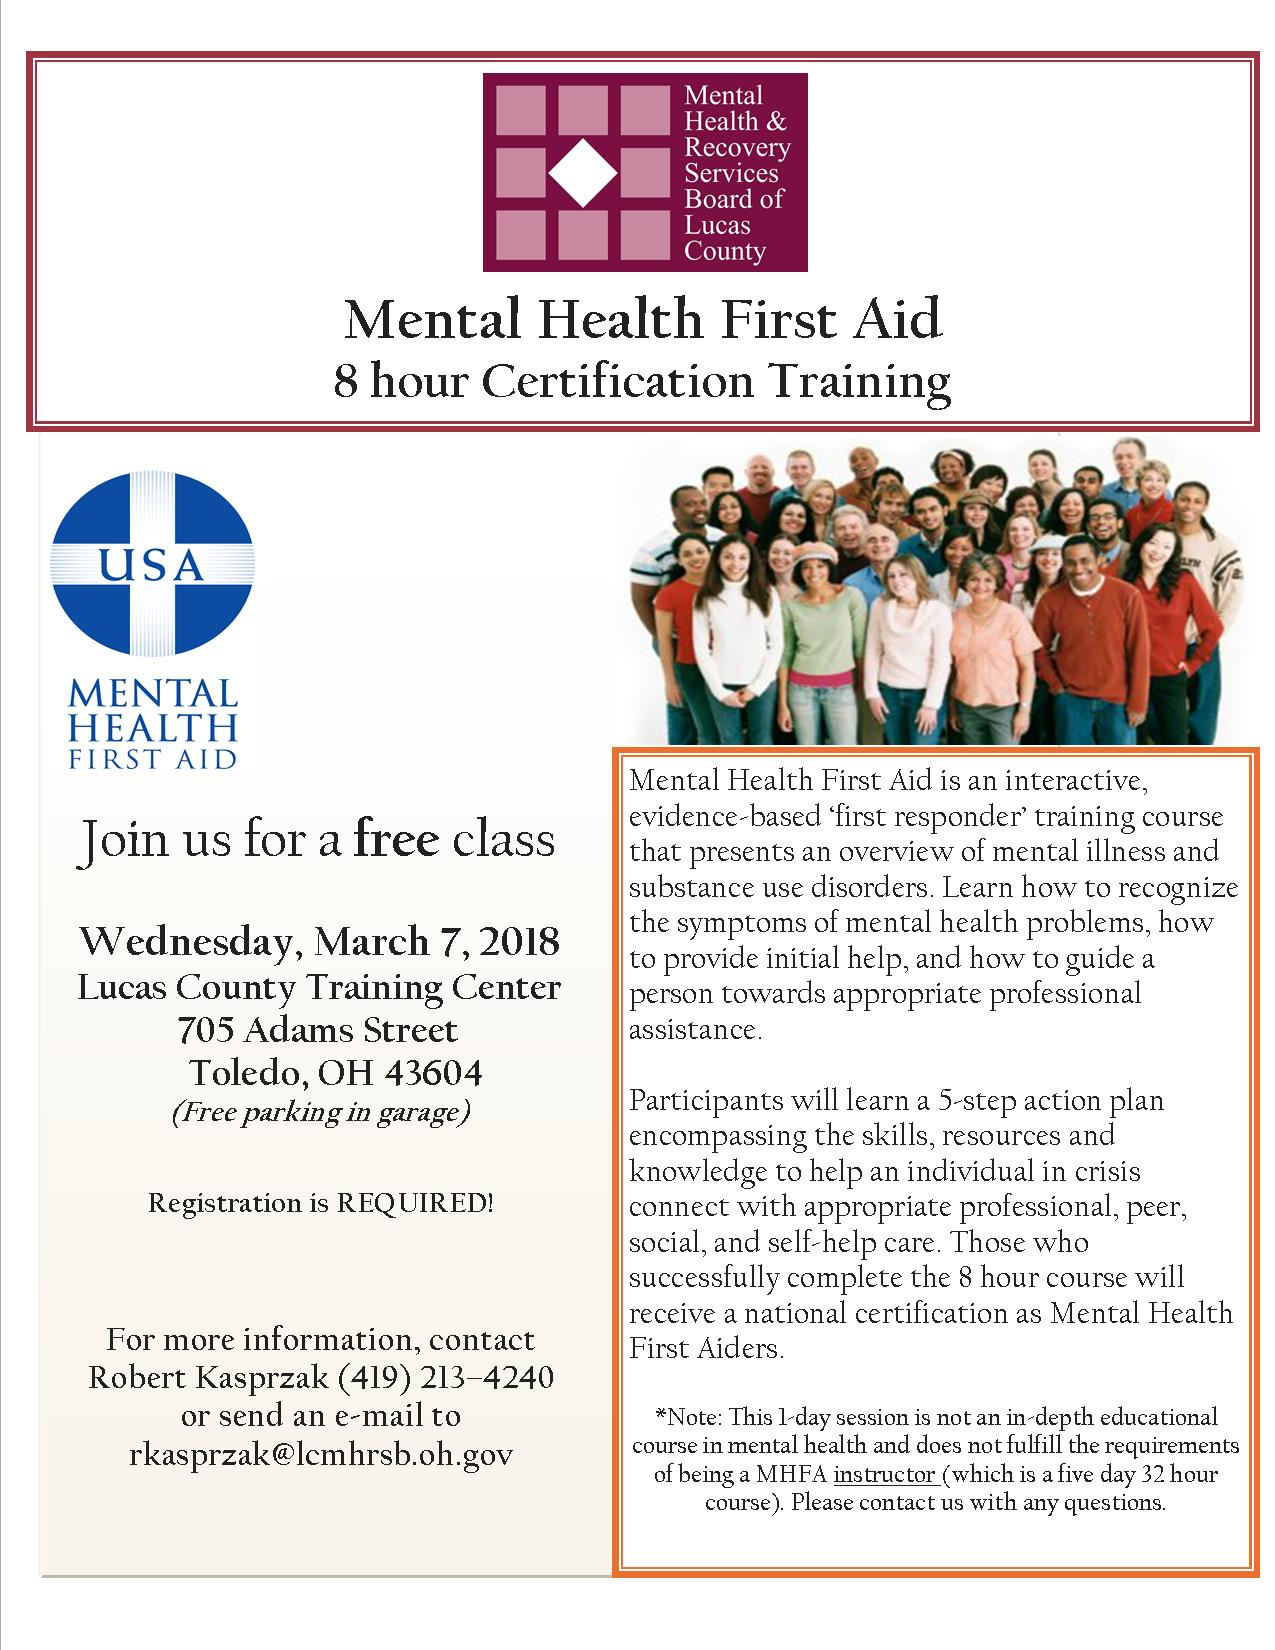 Mental health first aid training march 2018 tickets wed mar 7 description xflitez Gallery